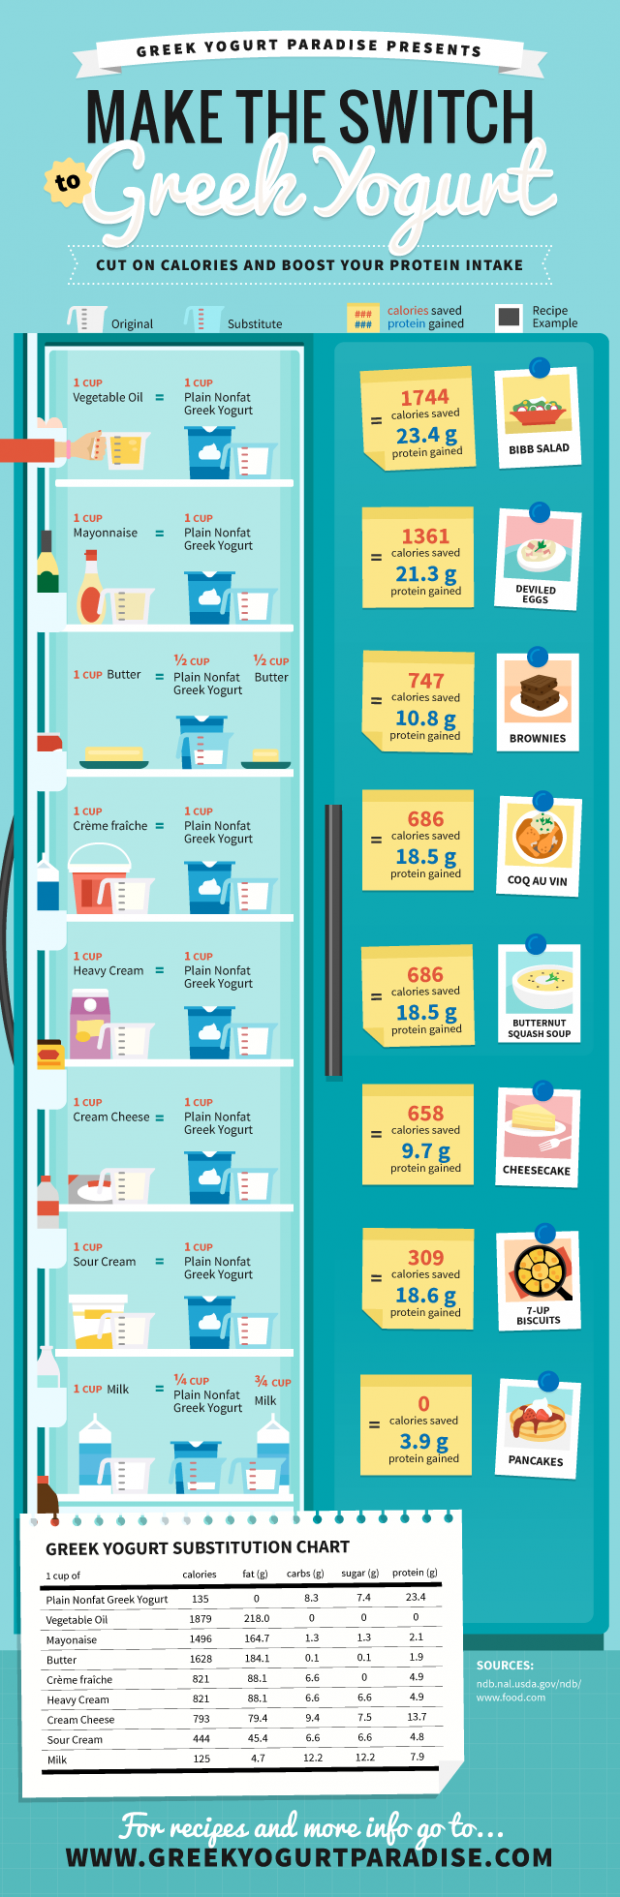 greek-yogurt-substitute-diet-plan